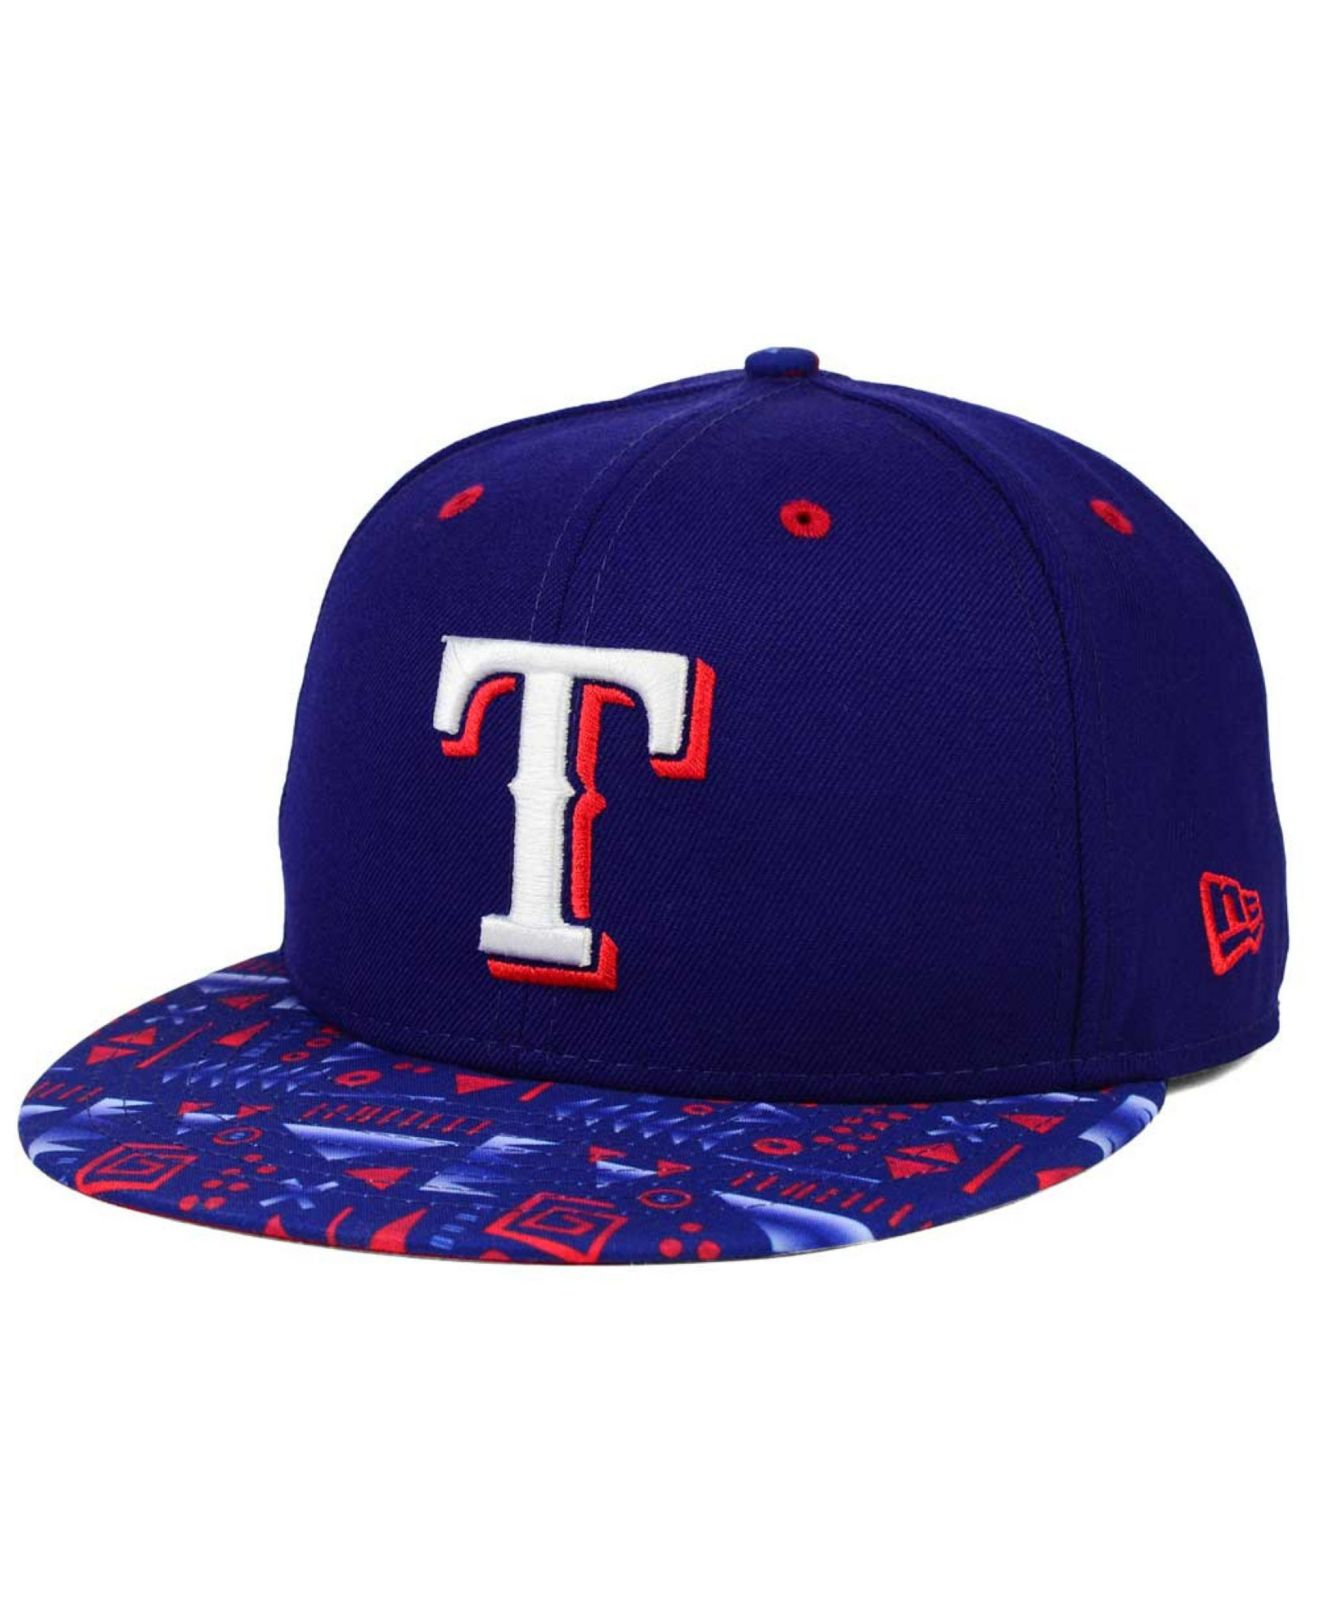 online retailer 6f988 5128a ... store lyst ktz texas rangers geo 59fifty cap in blue for men a7092 4ed2b